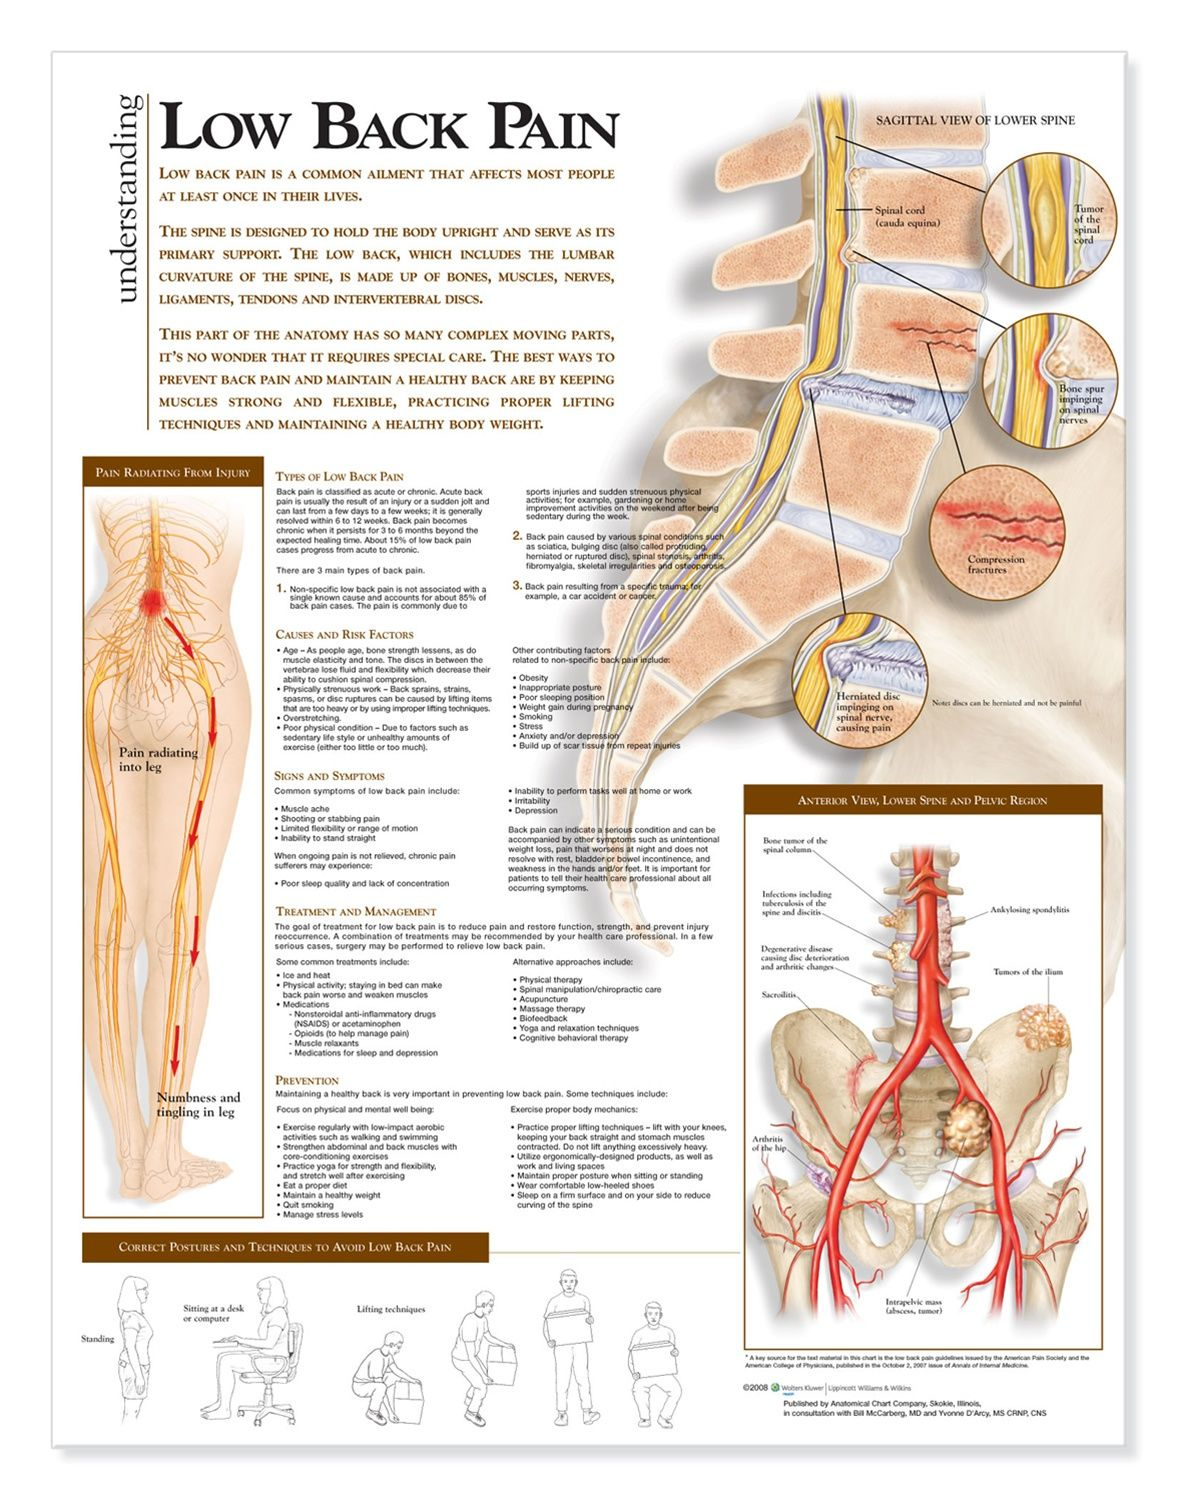 understanding low back pain anatomical chart anatomy models and anatomical charts [ 1179 x 1500 Pixel ]